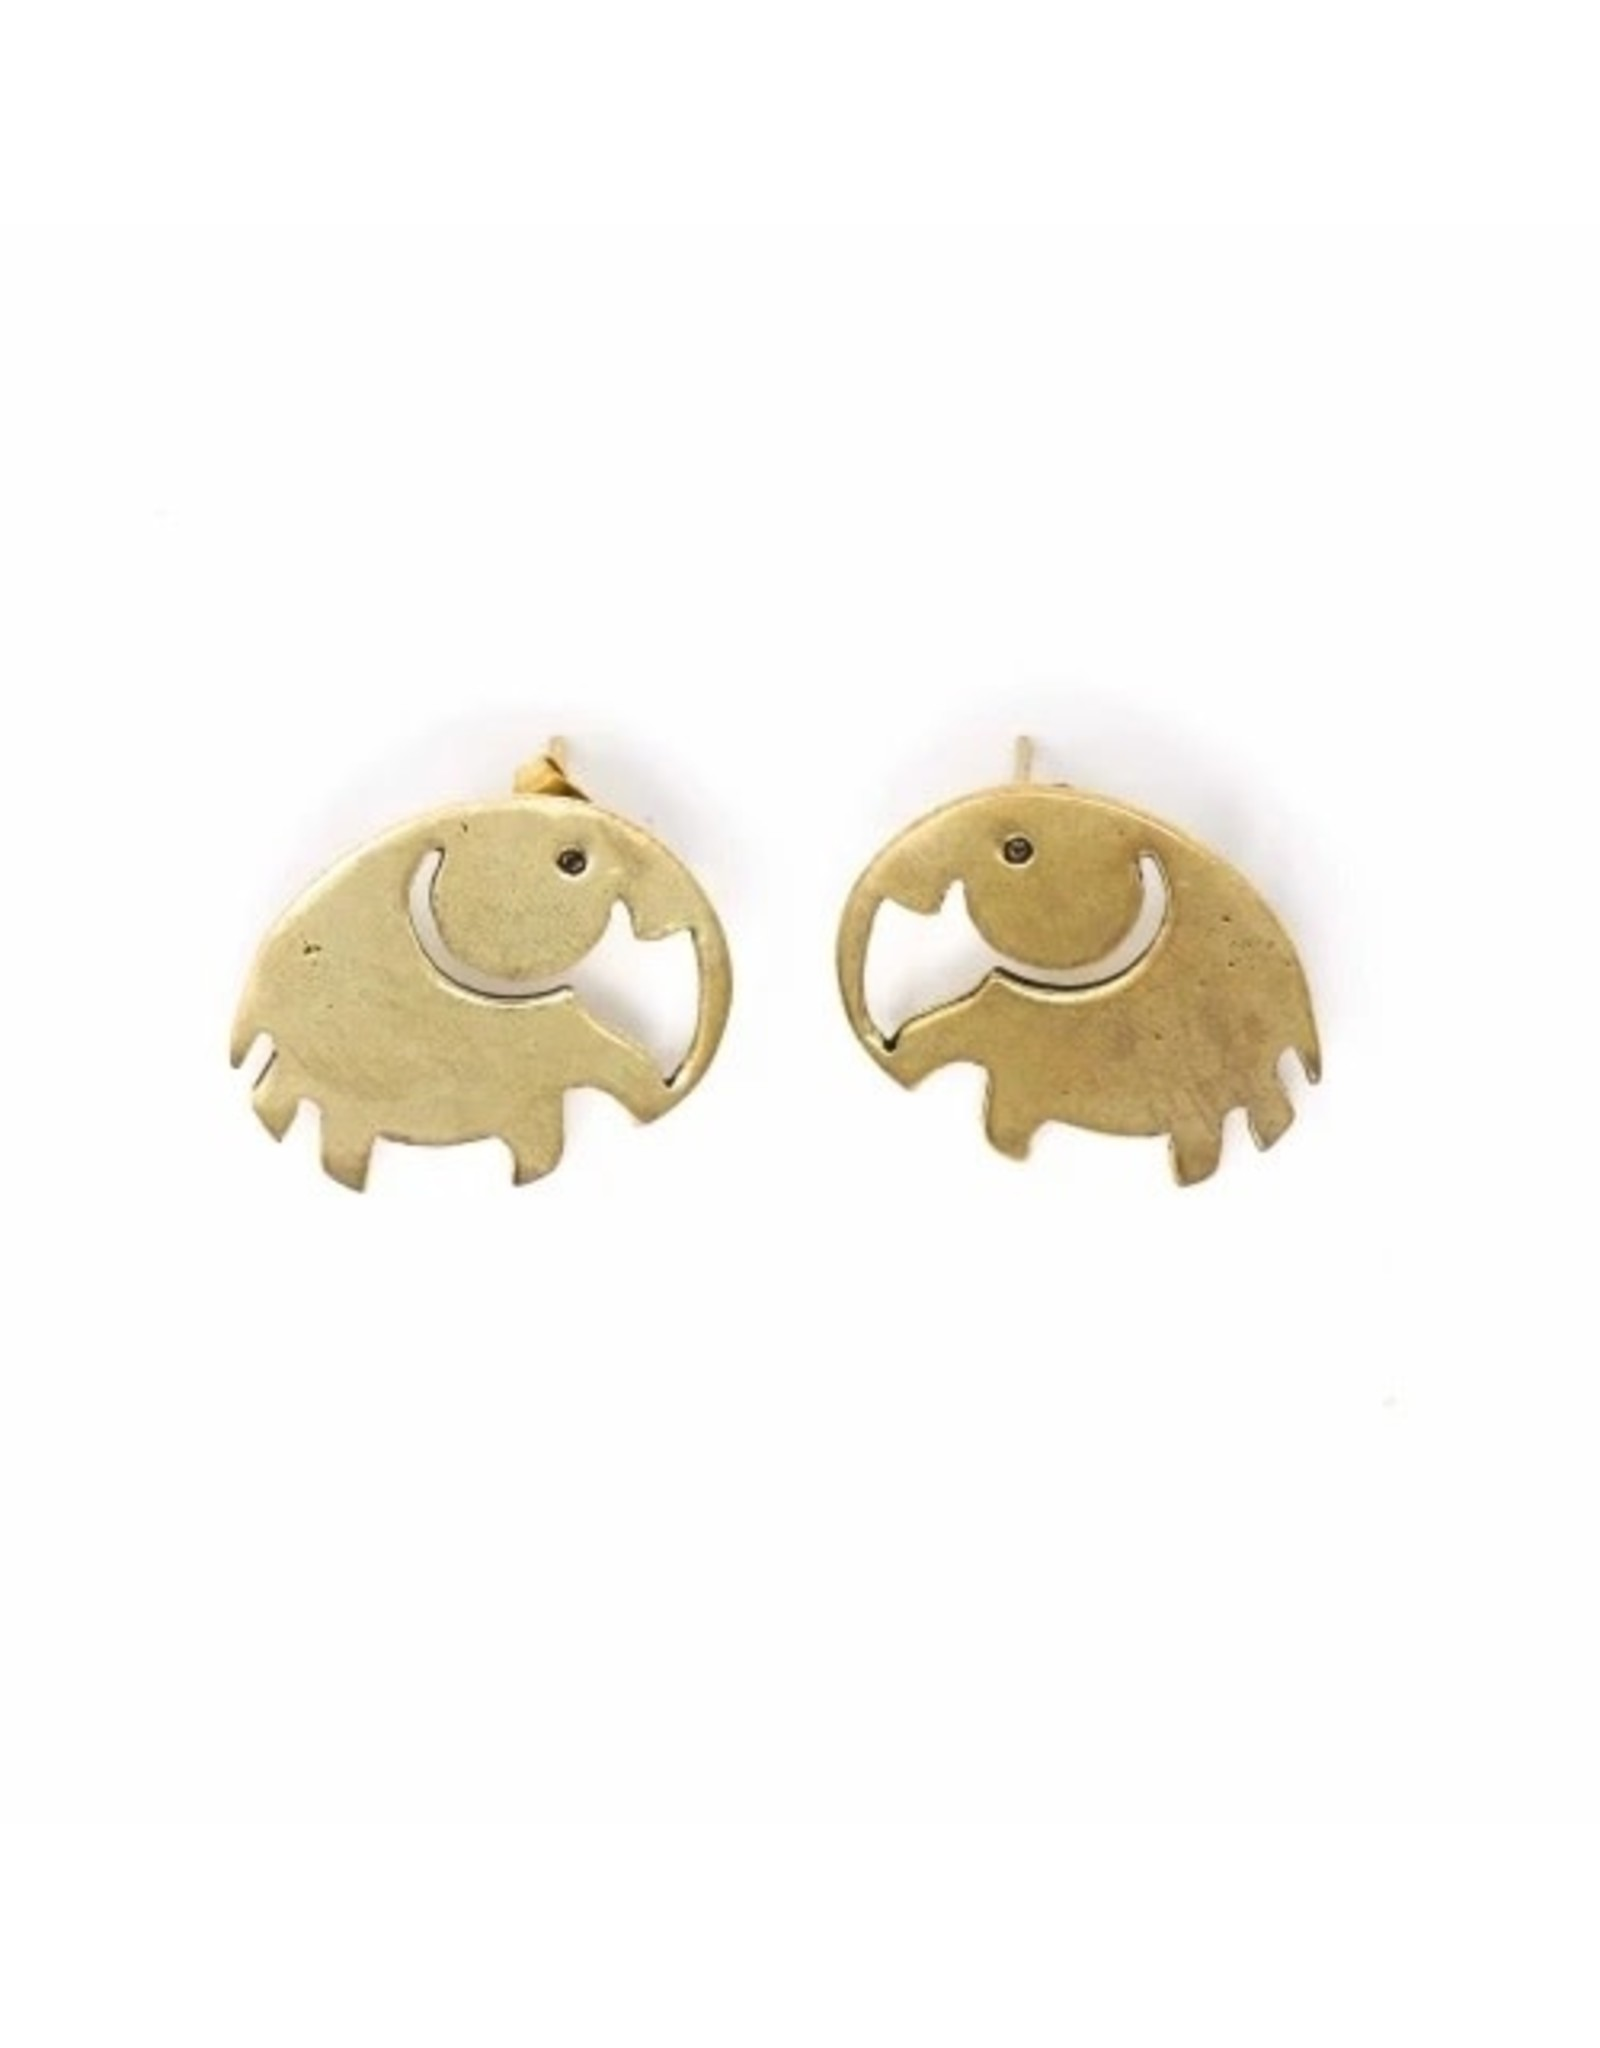 Global Crafts Brass Elephant stud Earrings